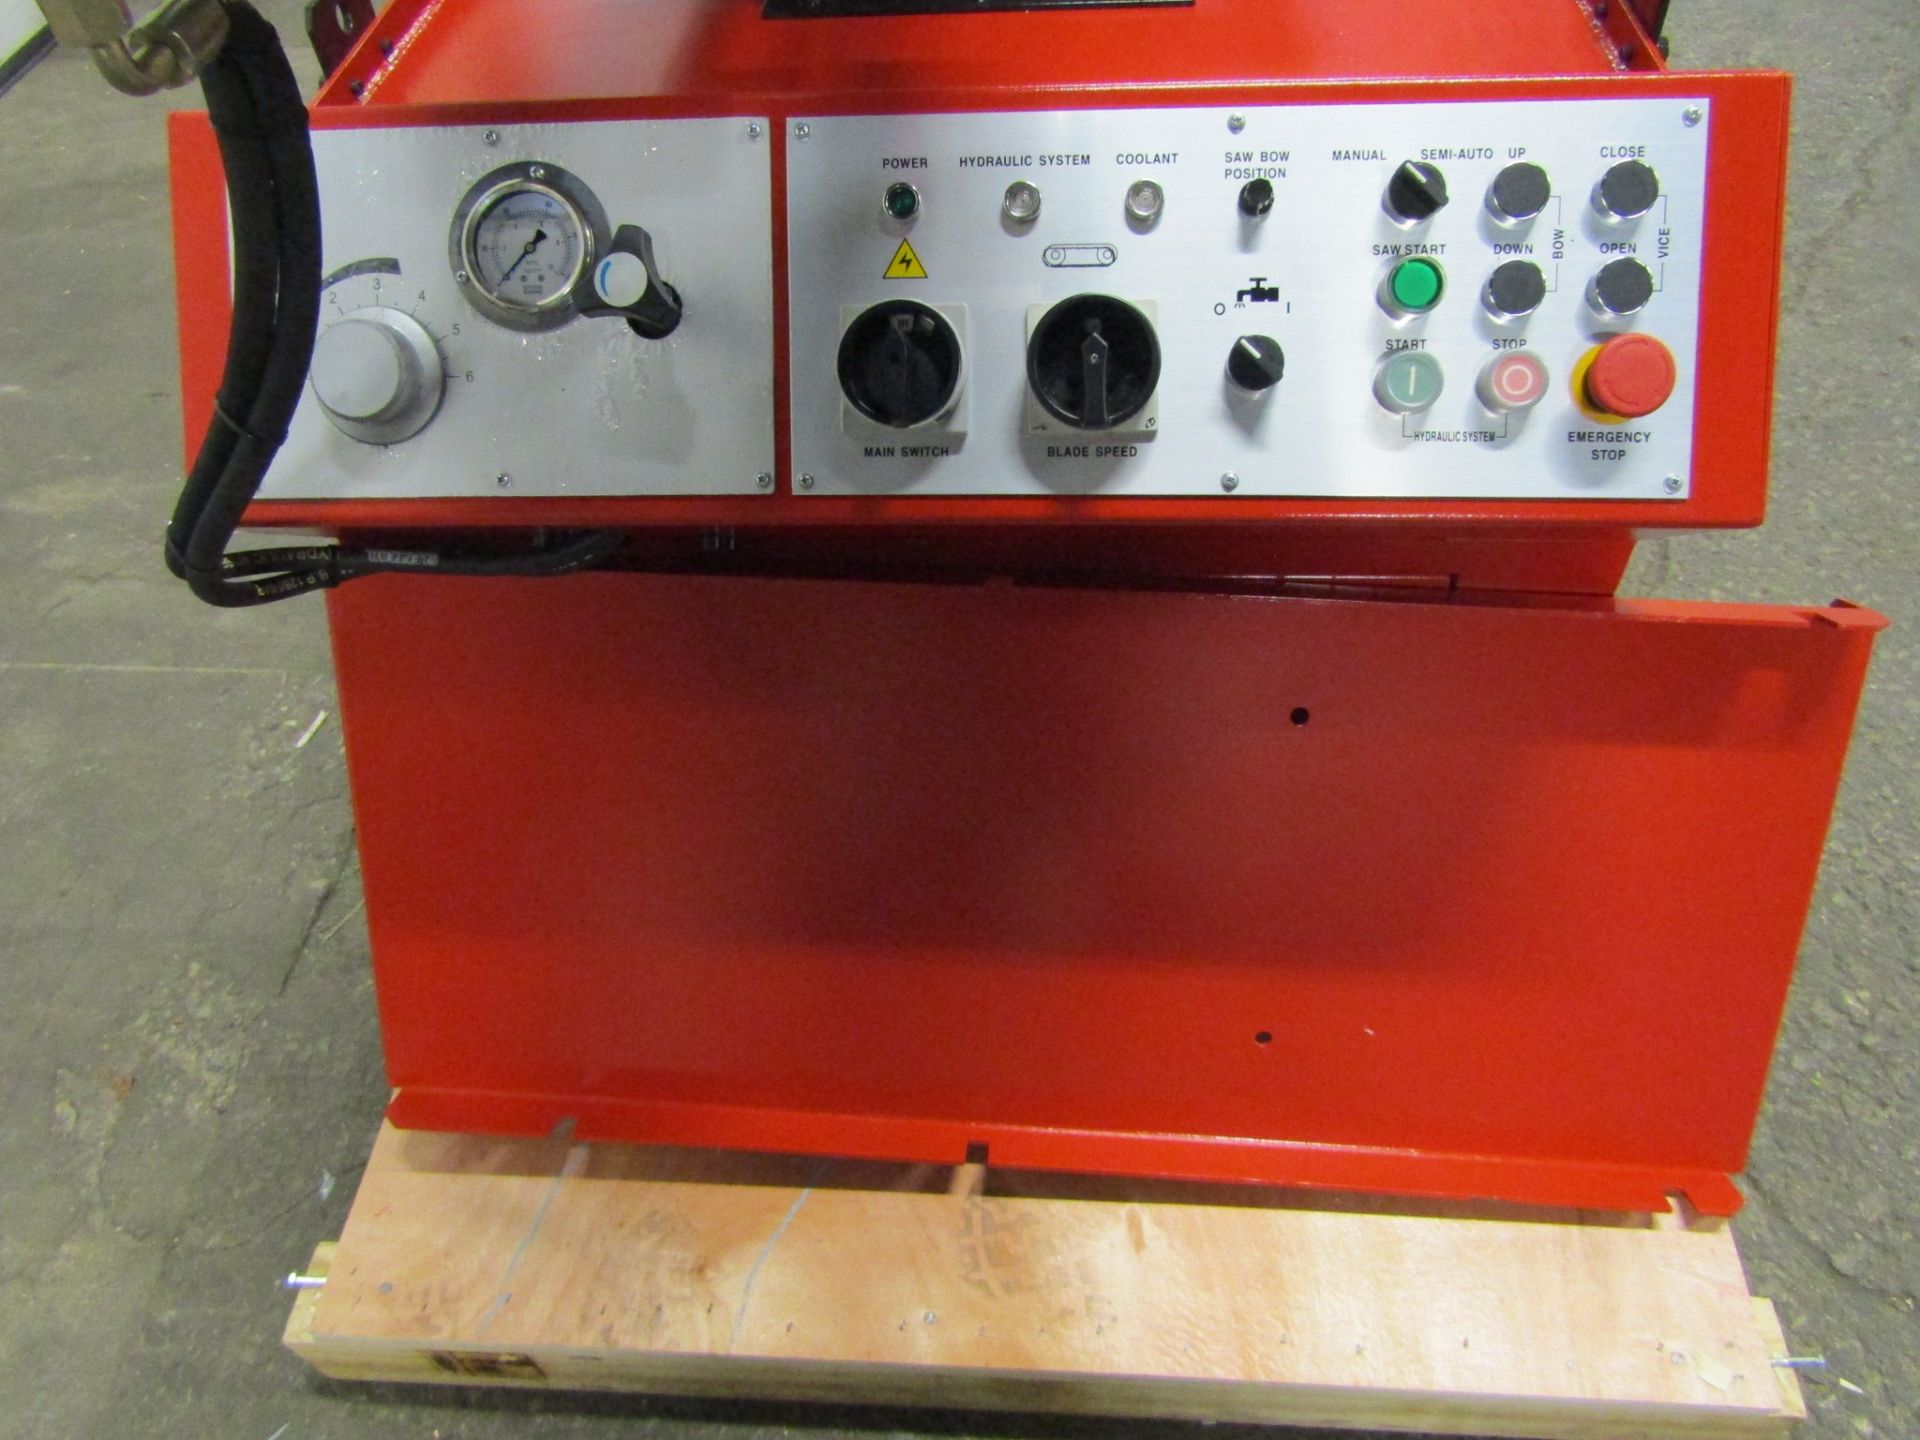 Magnum BS-1616A Horizontal Band Saw - 16 X 16 inch CUTTING CAPACITY - MINT & UNUSED 220V - Image 3 of 4